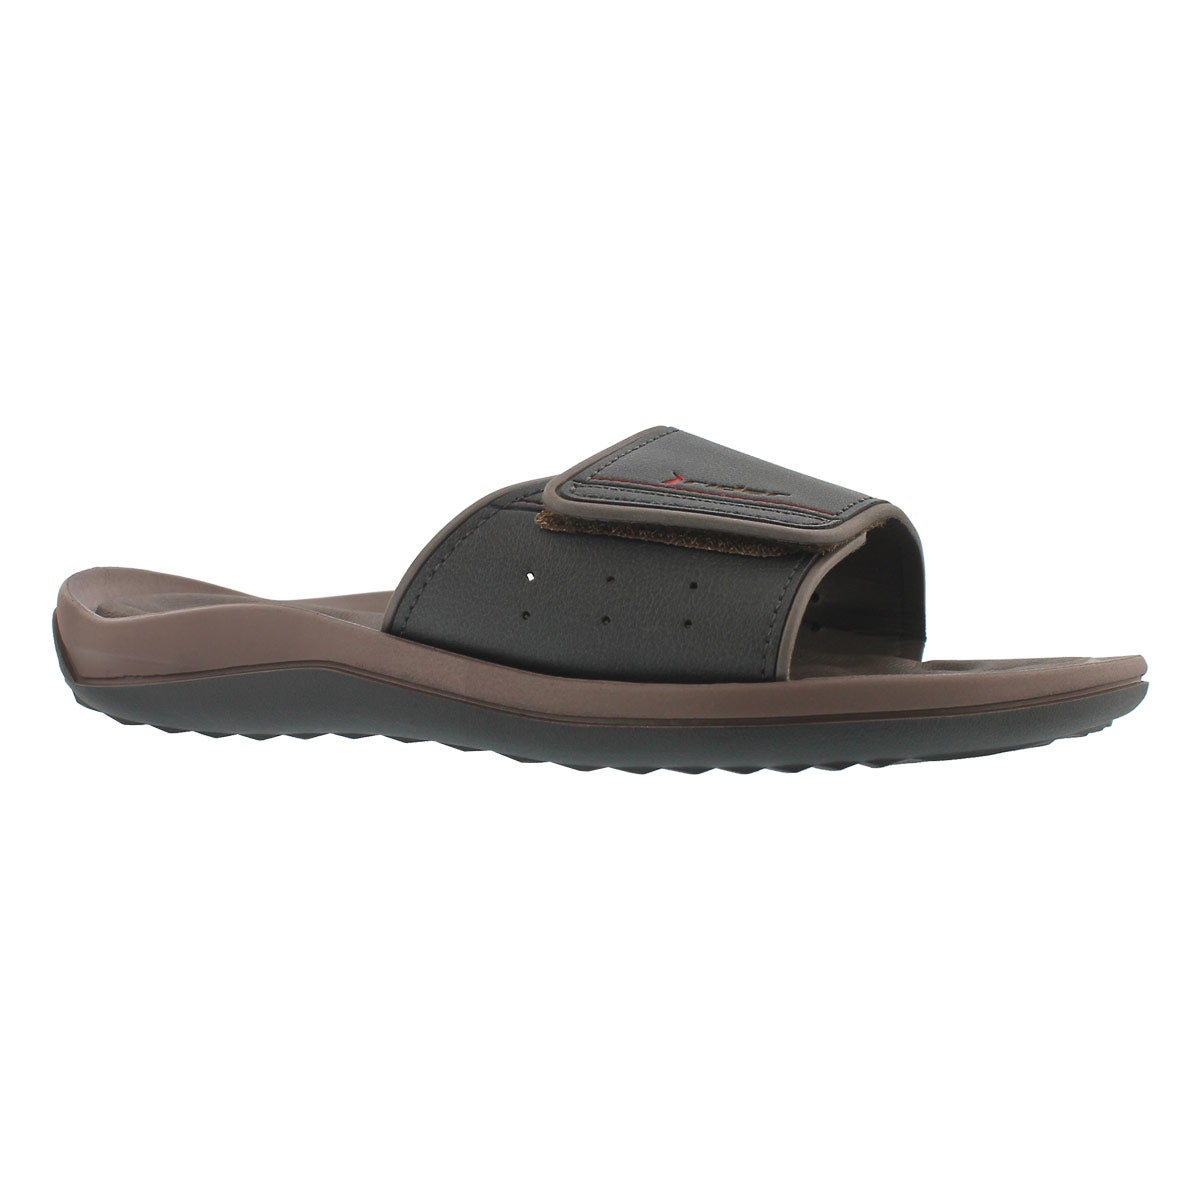 Men's DUNAS EVOLUTION brown/black slide sandals